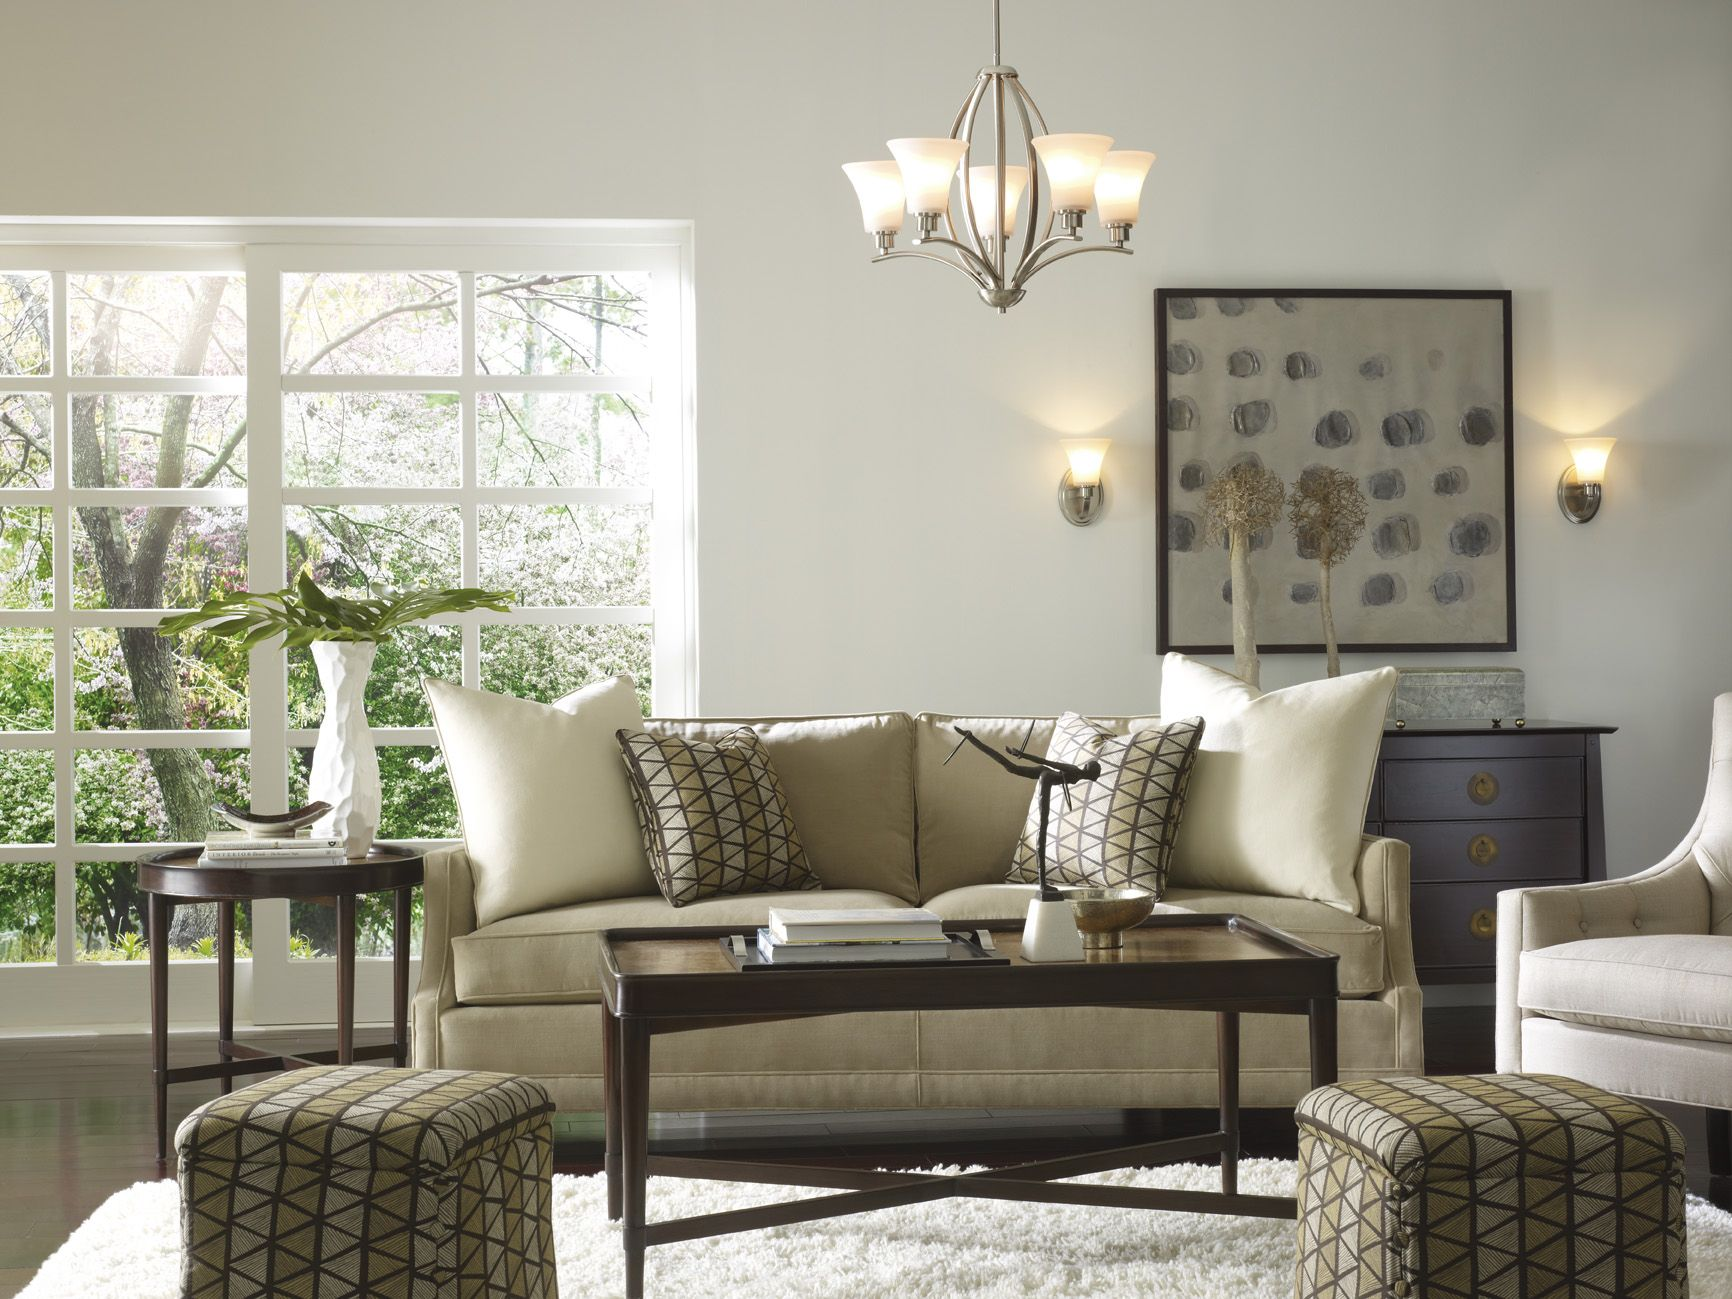 Tips on how to use wall sconces from Progress Lighting's ... on Living Room Wall Sconce Ideas For Dining Area id=42563